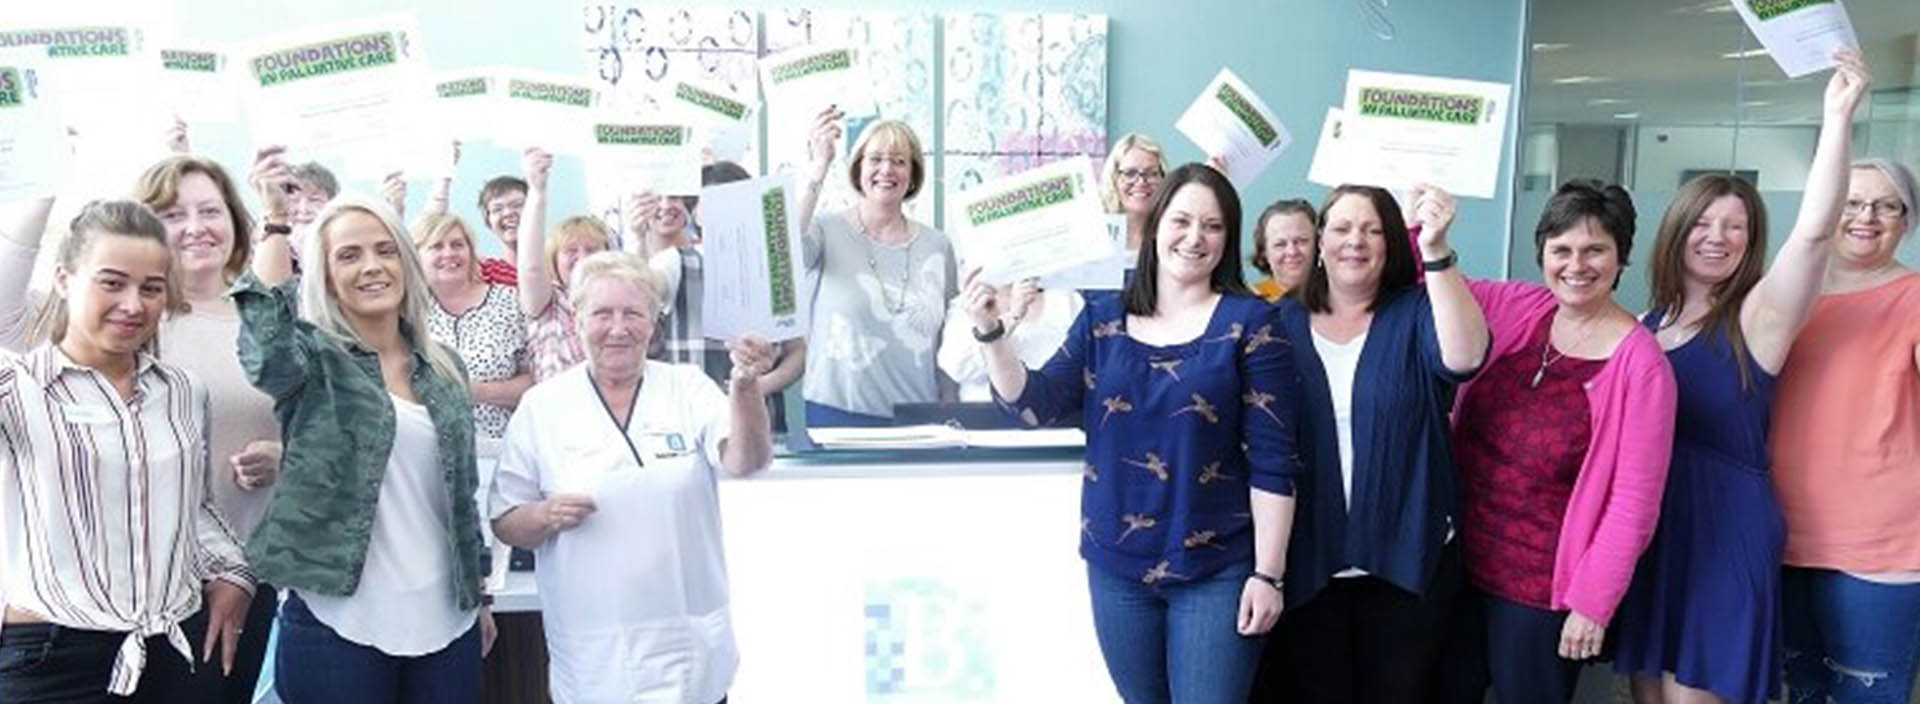 Balhousie Care Group teams up with Macmillan Cancer Support to deliver valuable training in Palliative Care